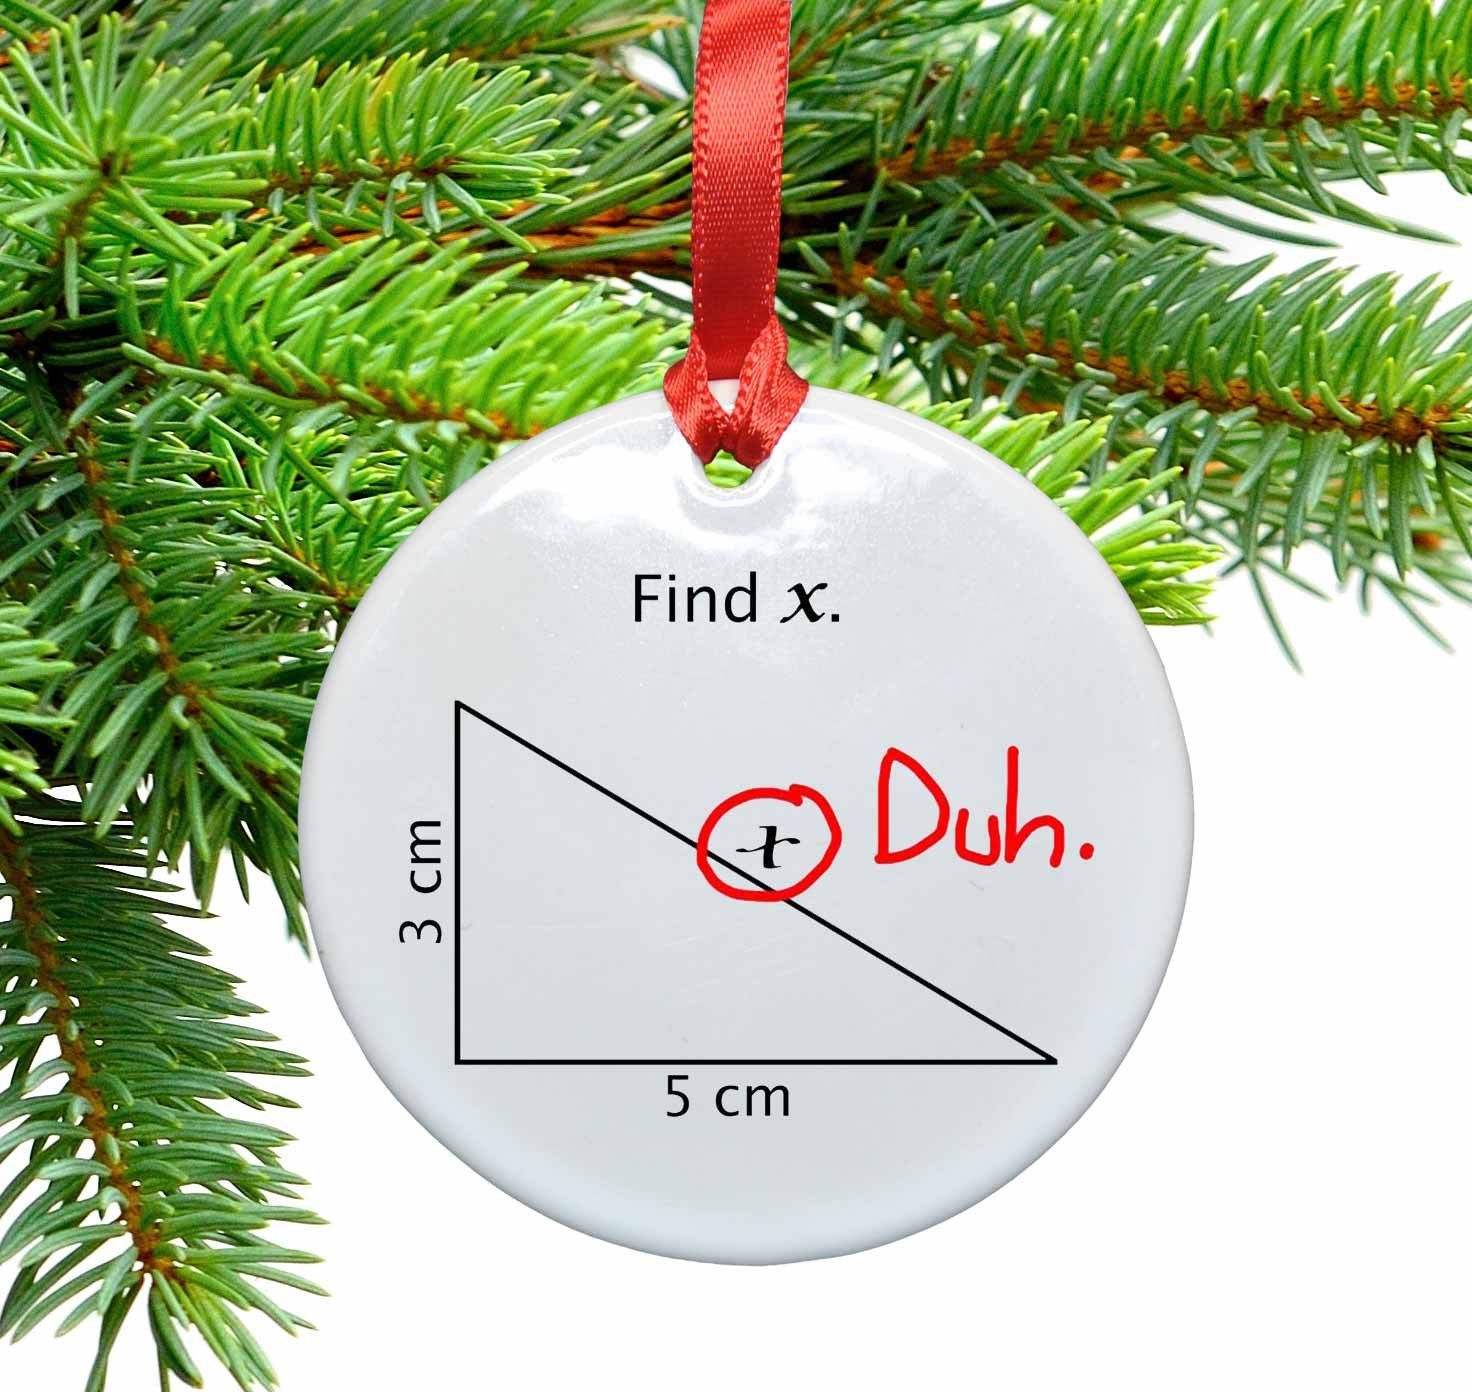 Why Do We Have Christmas Trees For Christmas: Math Find X Funny Christmas Tree Ornament